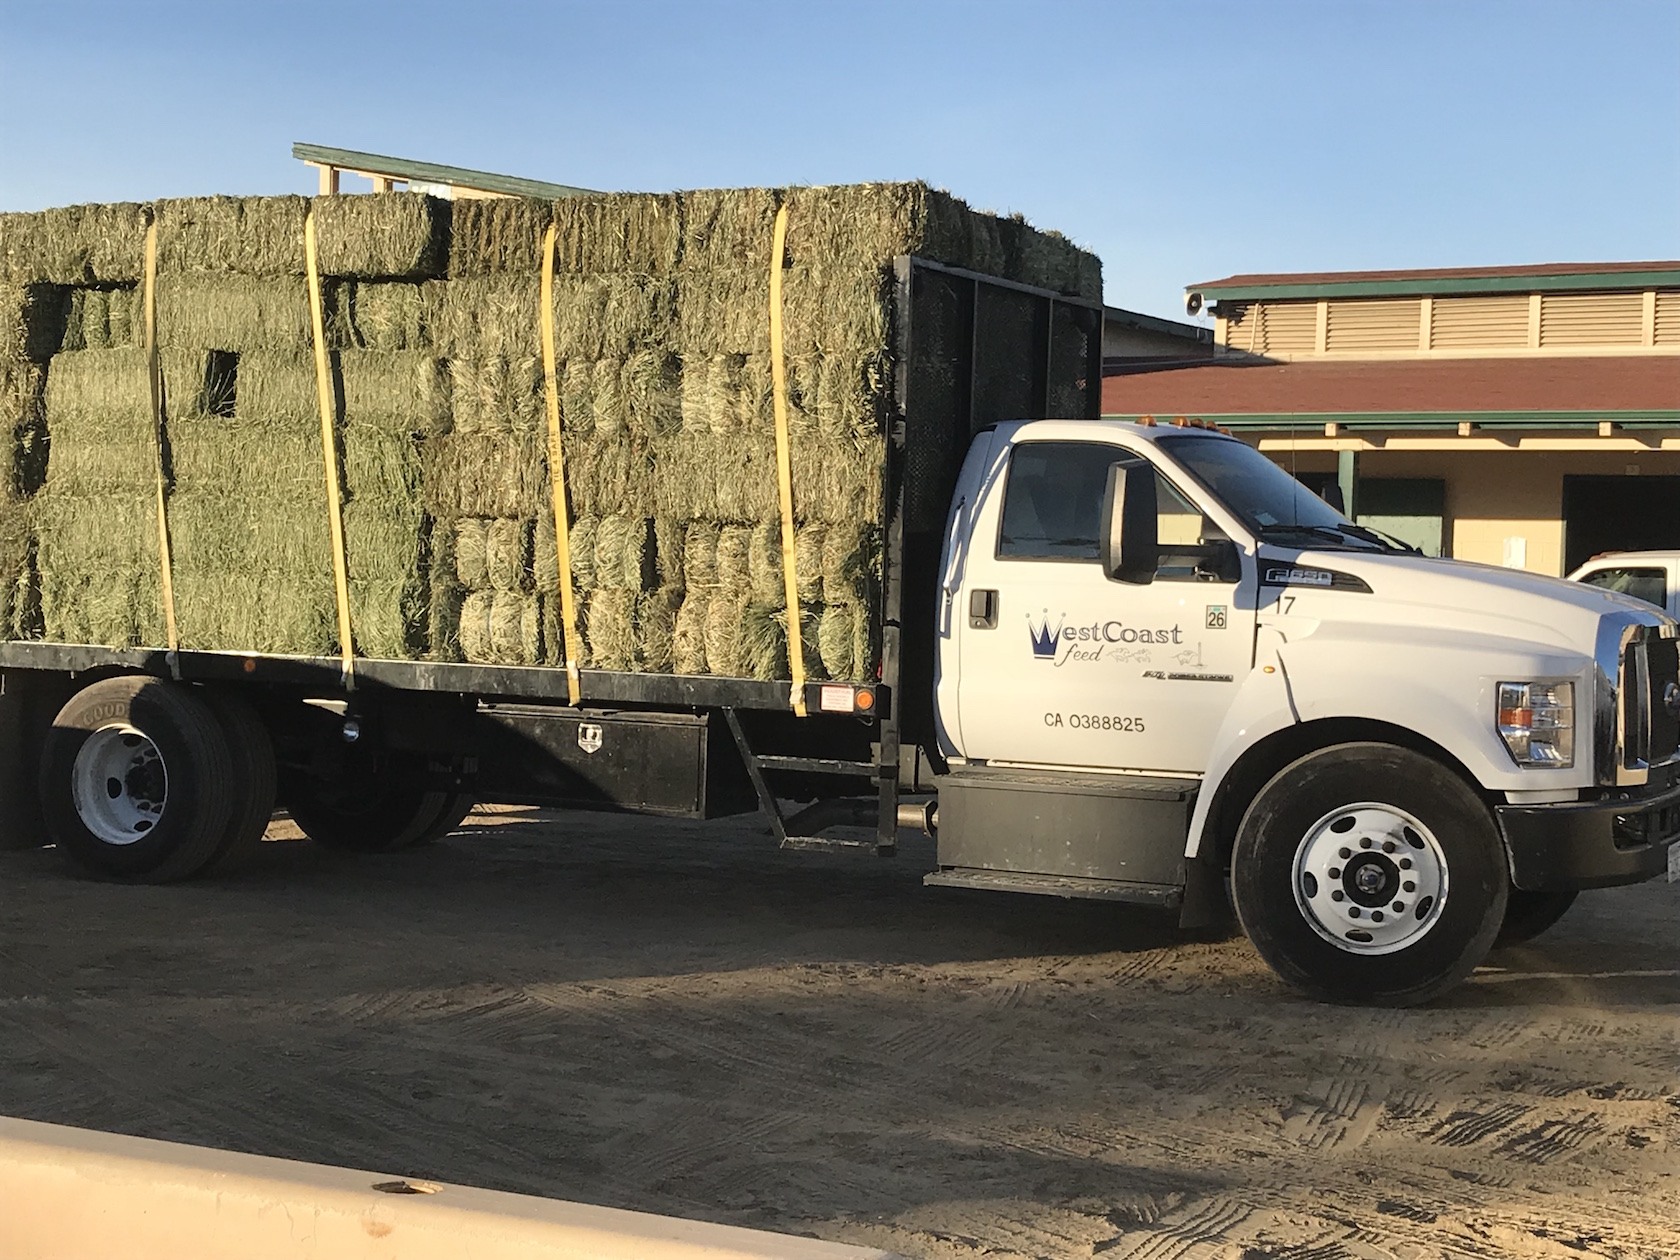 Truck-loads of hay from local feed companies were among the desperately needed supplies vanned in to Del Mar. Photo: Zoe Cadman